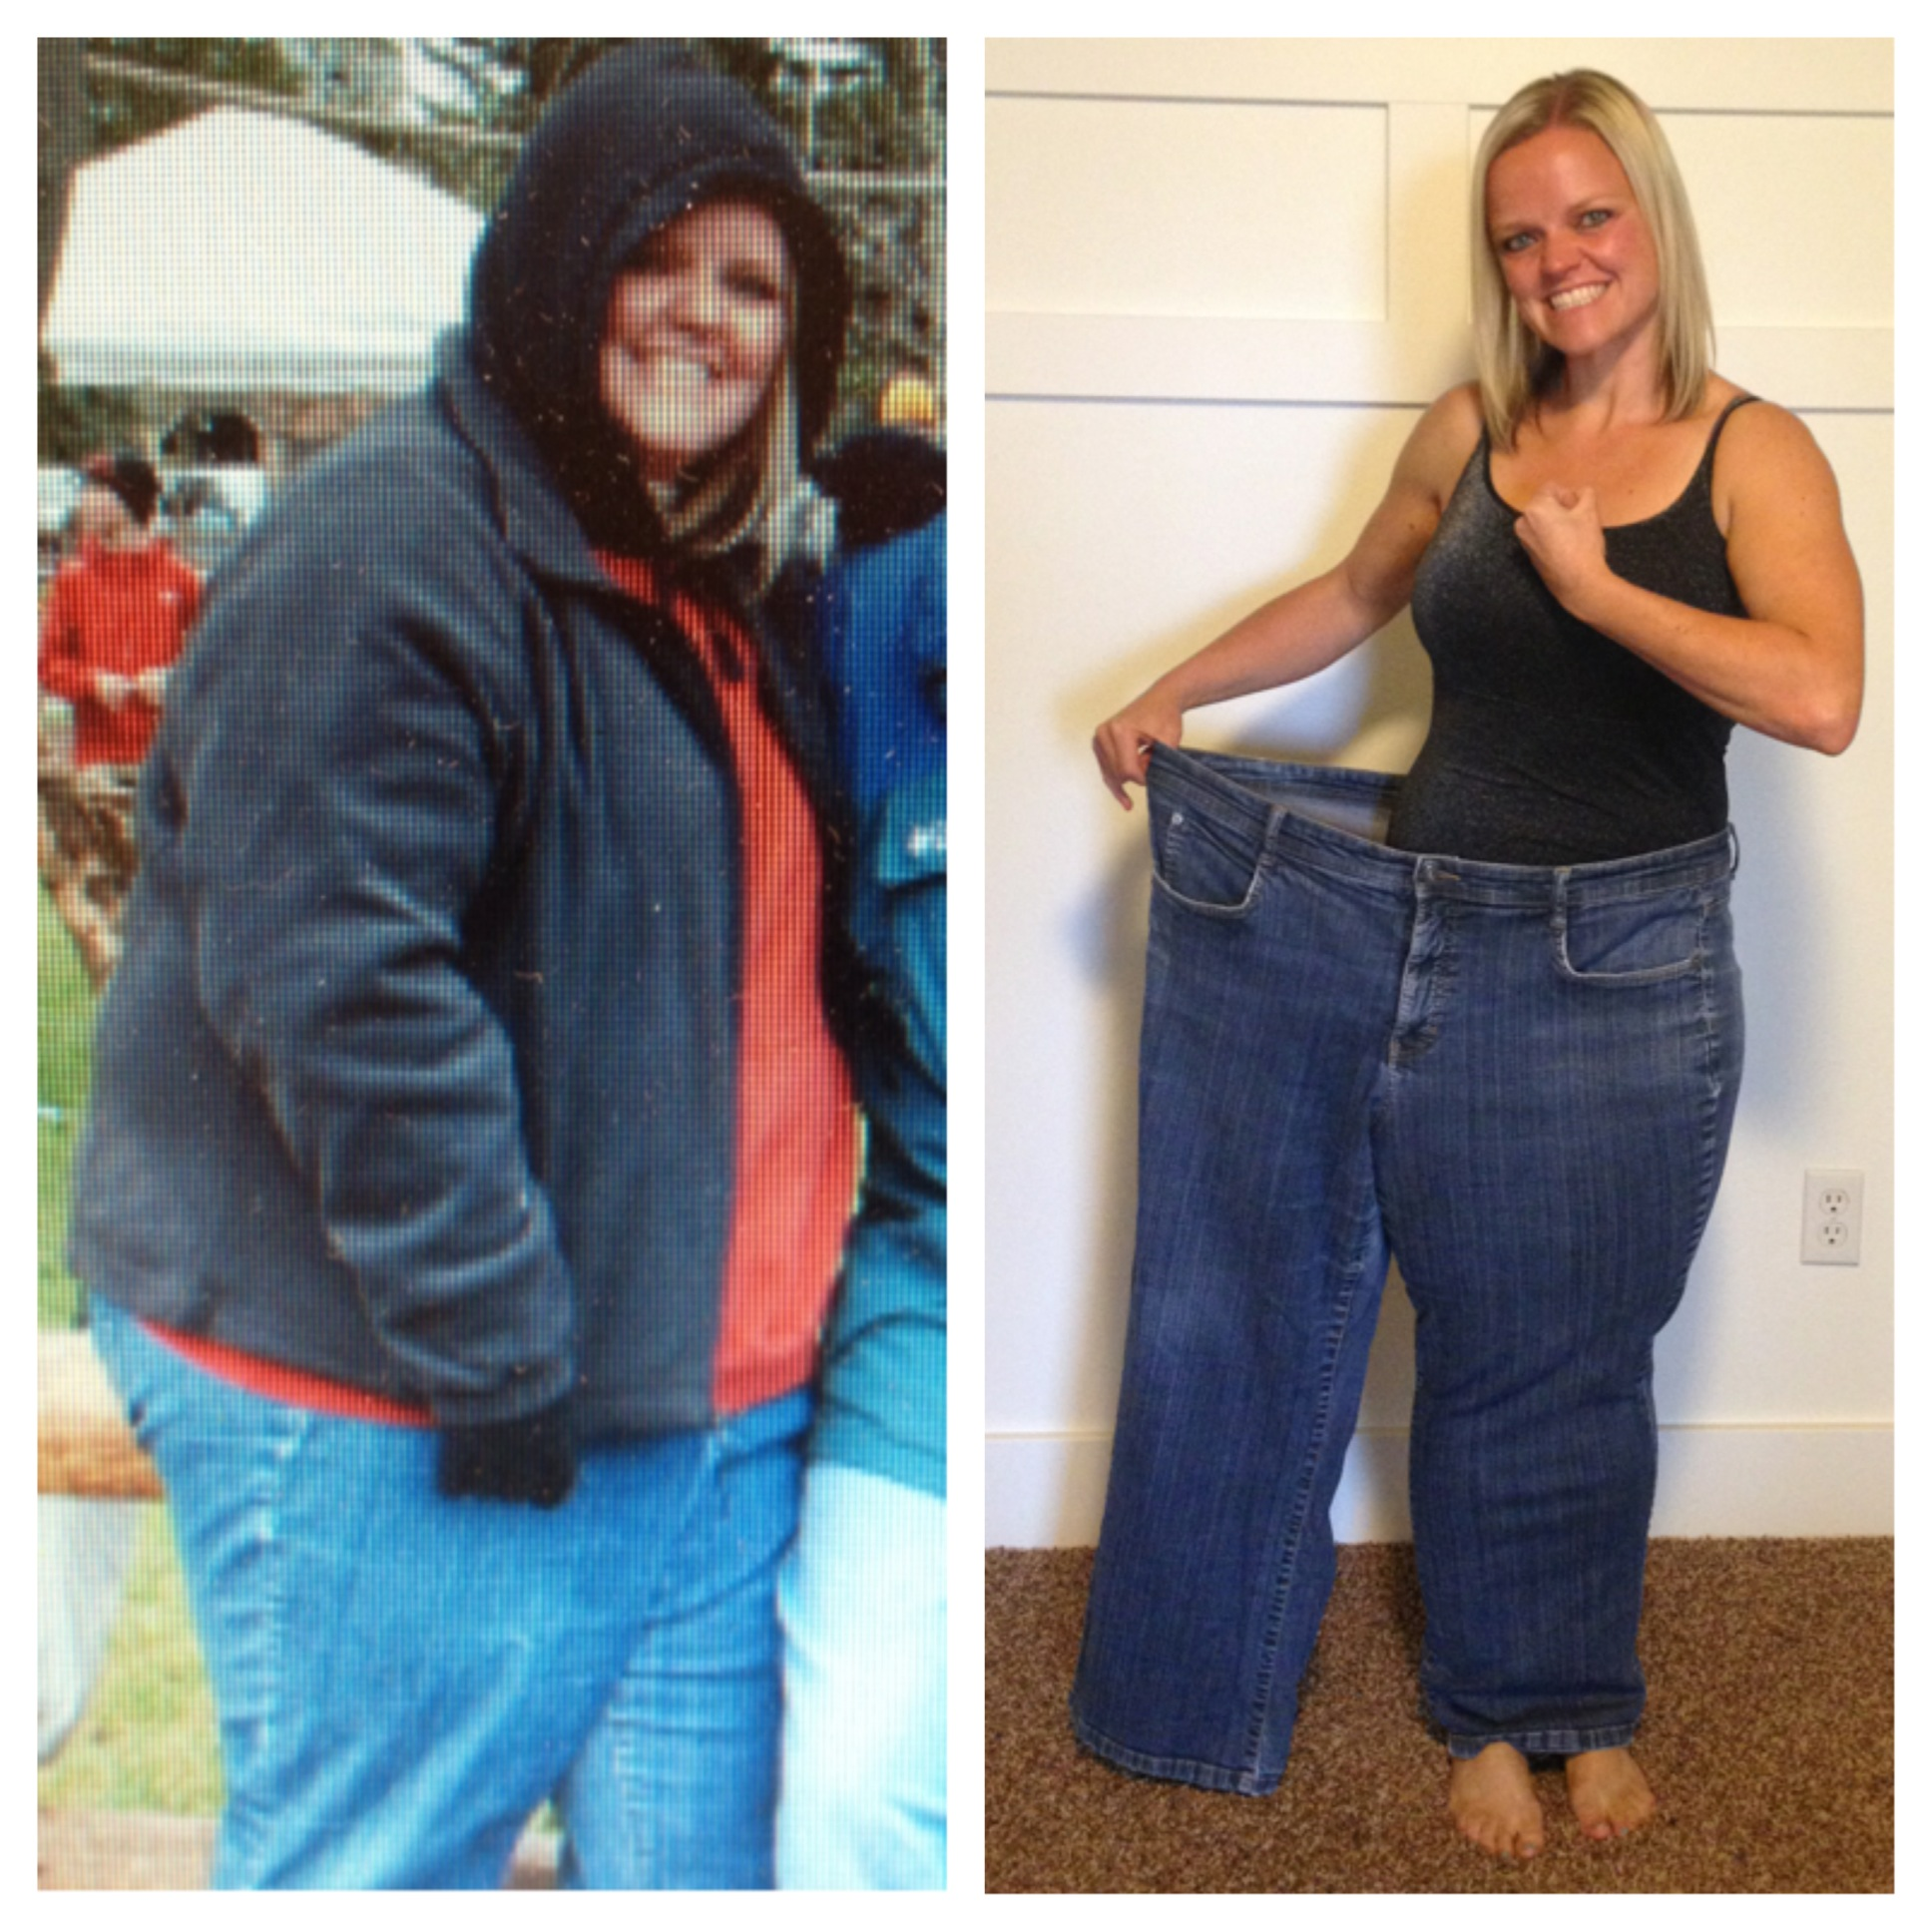 Jamie lost 159 pounds! See my before and after weight loss pictures, and read amazing weight loss success stories from real women and their best weight loss diet plans and programs. Motivation to lose weight with walking and inspiration from before and after weightloss pics and photos.